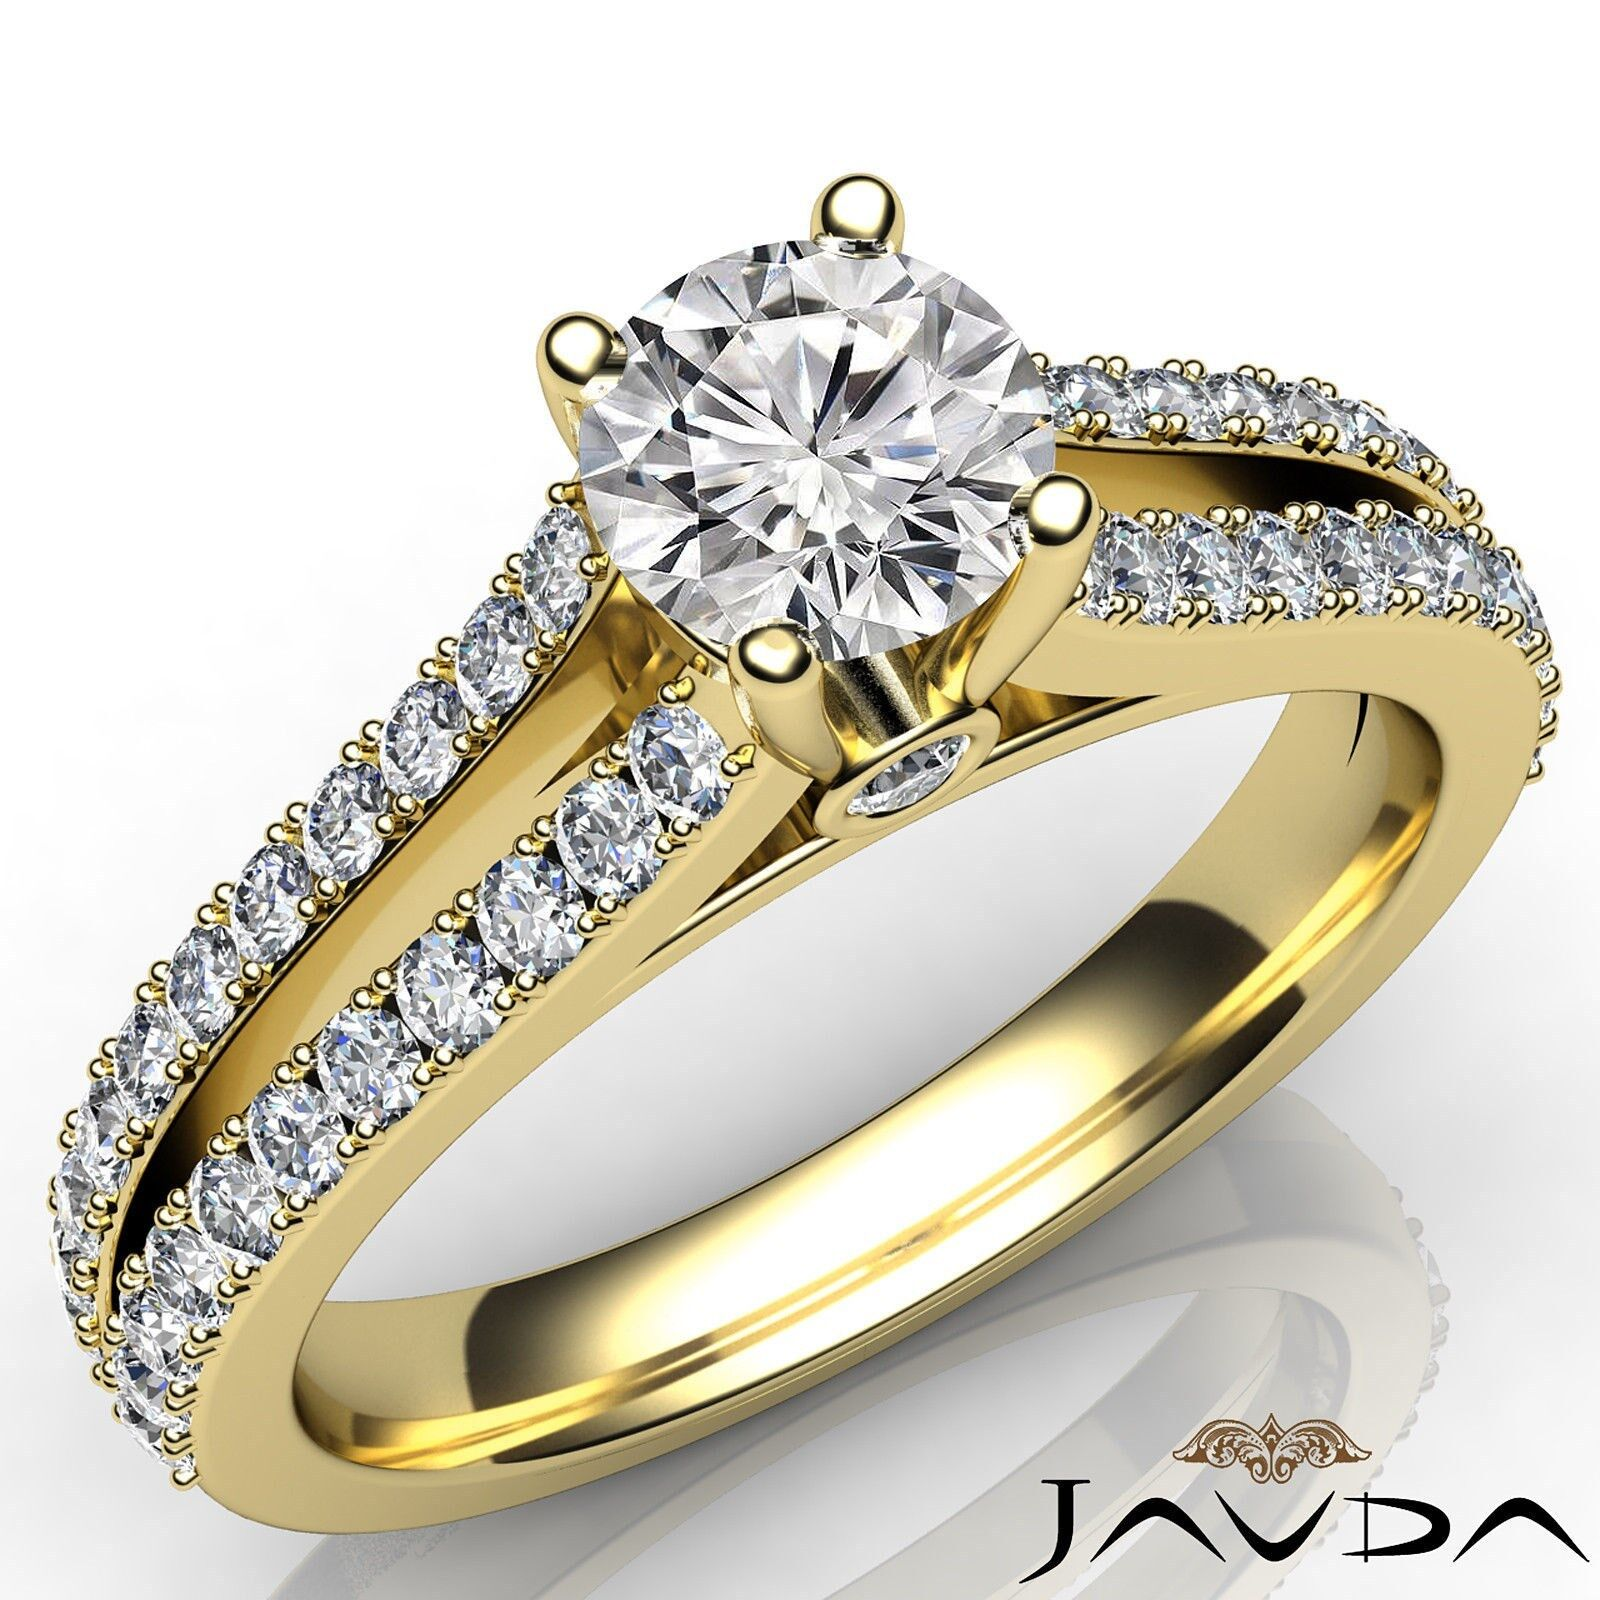 French Pave Set Round Diamond Engagement Split Shank Bezel Ring GIA D SI1 1.15Ct